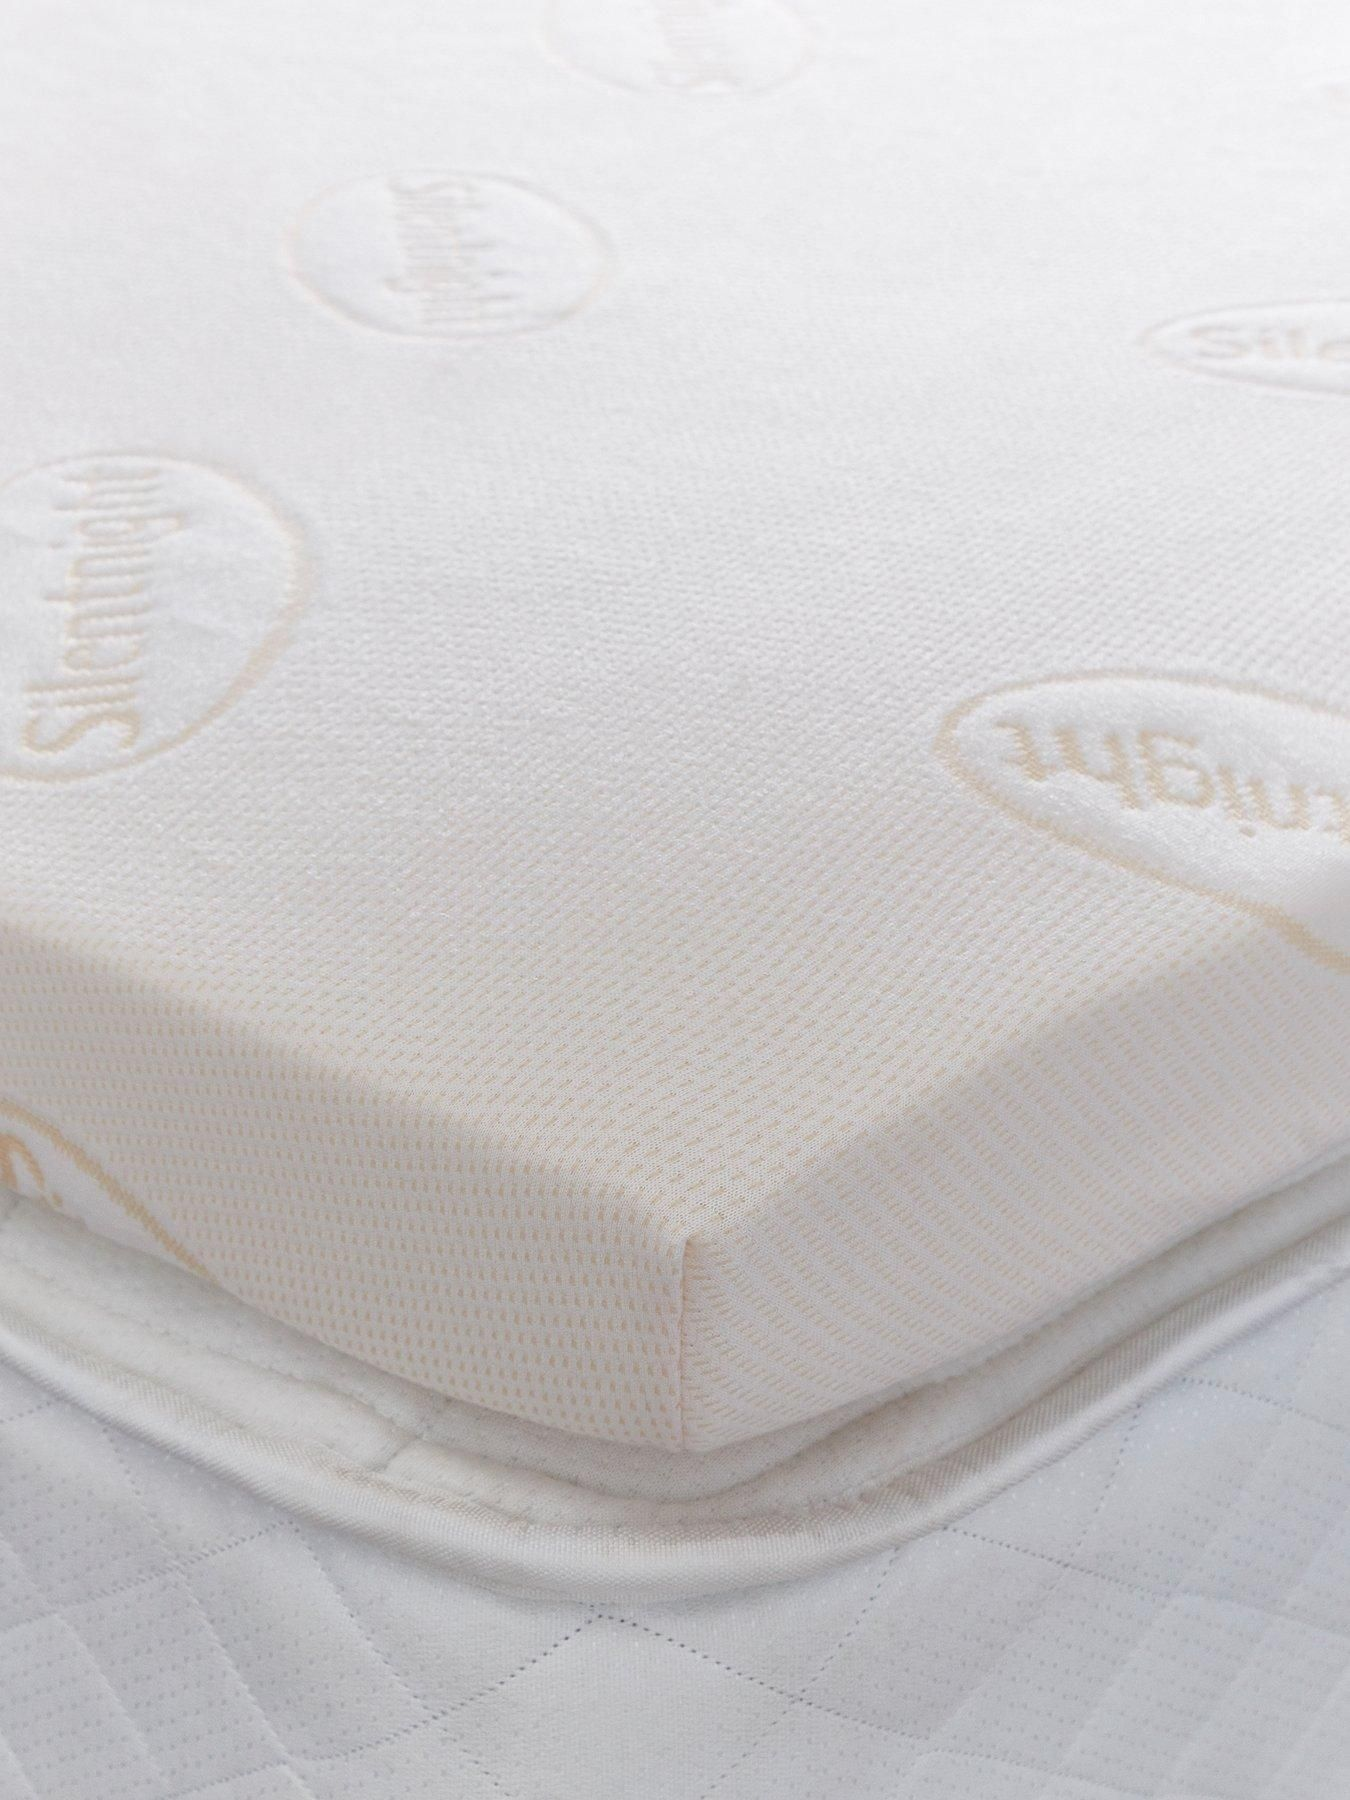 Silentnight Luxury Impress 7cm Memory Foam Mattress Topper One